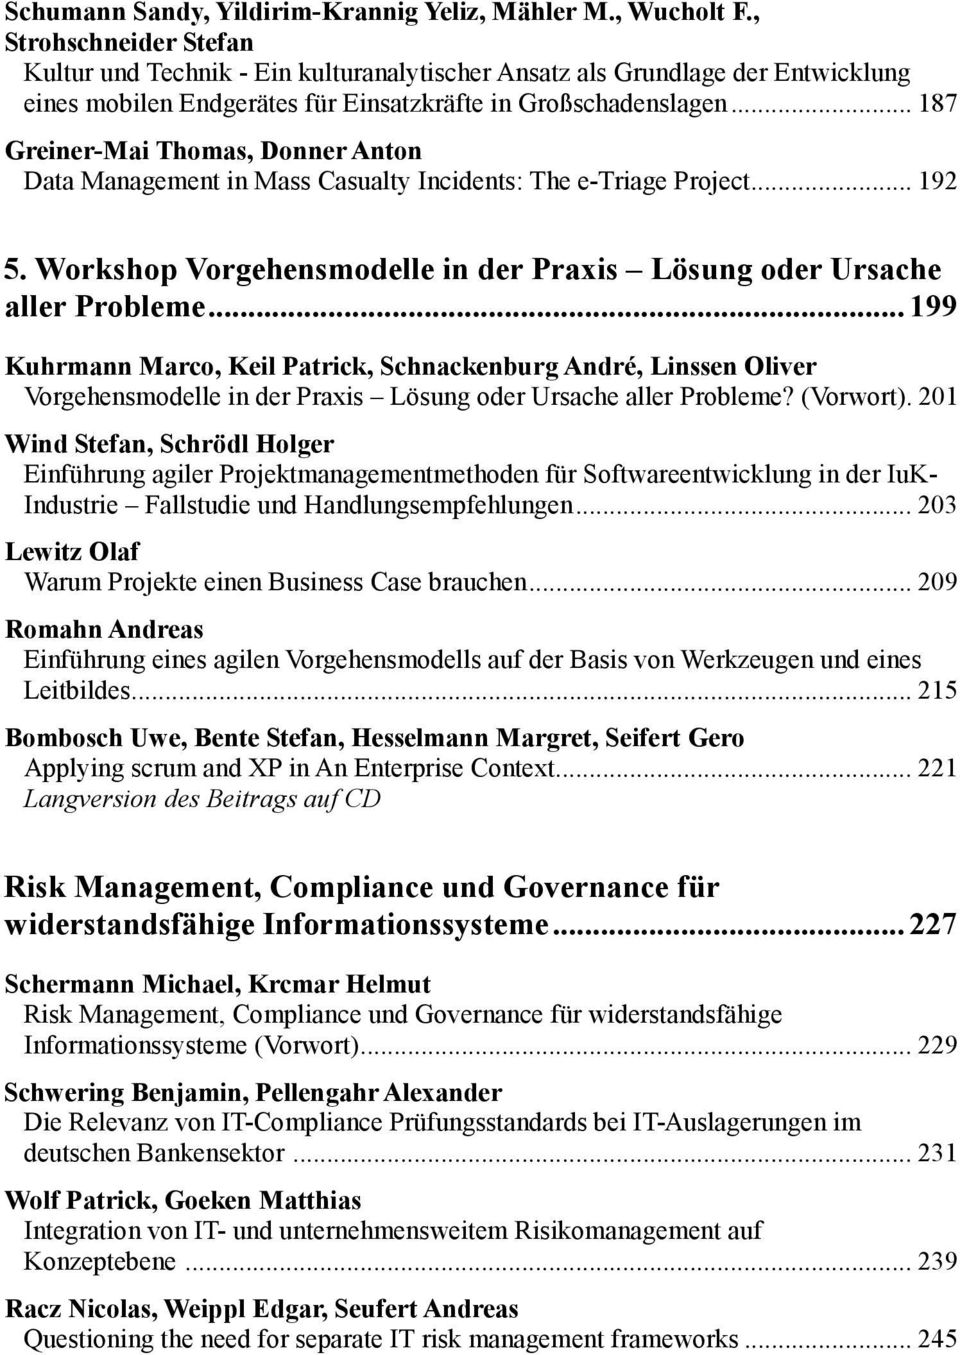 .. 187 Greiner-MaiThomas, DonnerAnton Data Management inmasscasualtyincidents:the e-triage Project... 192 5. Workshop Vorgehensmodelle in der Praxis Lösung oder Ursache allerprobleme.